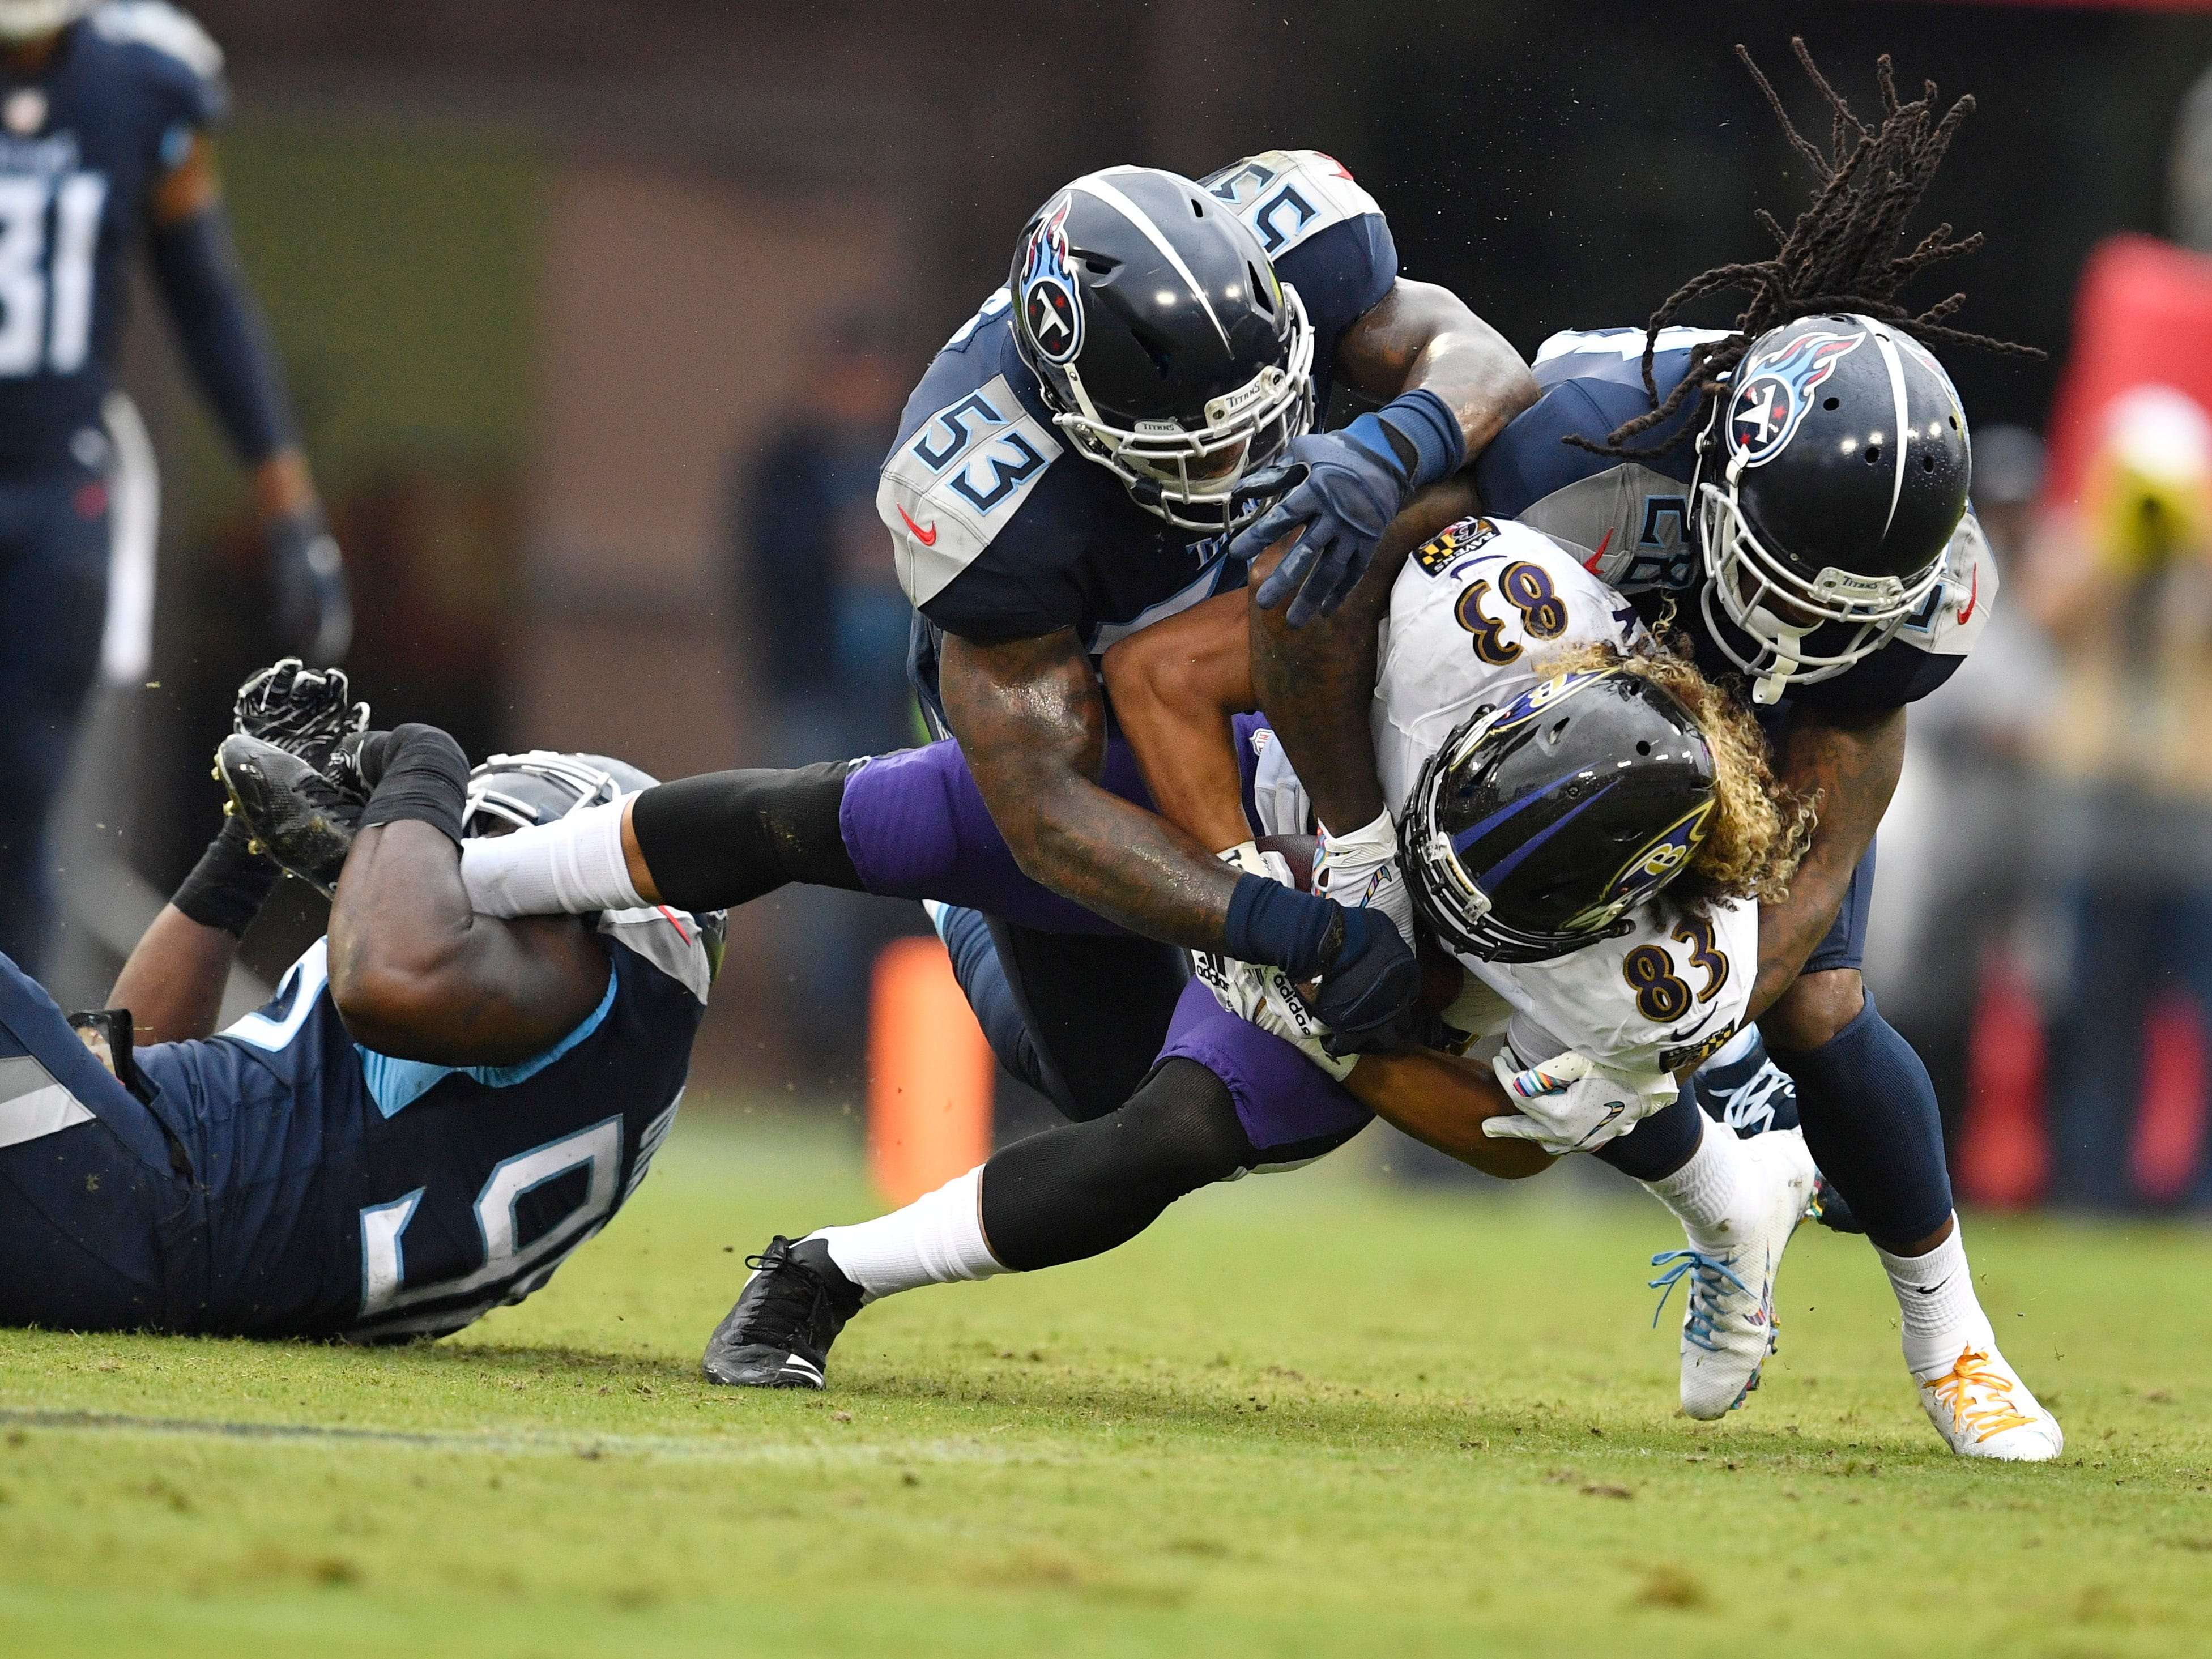 Titans linebacker Brian Orakpo (98), linebacker Daren Bates (53) and defensive back Kendrick Lewis (28) bring down Ravens wide receiver Willie Snead (83) in the first half at Nissan Stadium Sunday, Oct. 14, 2018, in Nashville, Tenn.